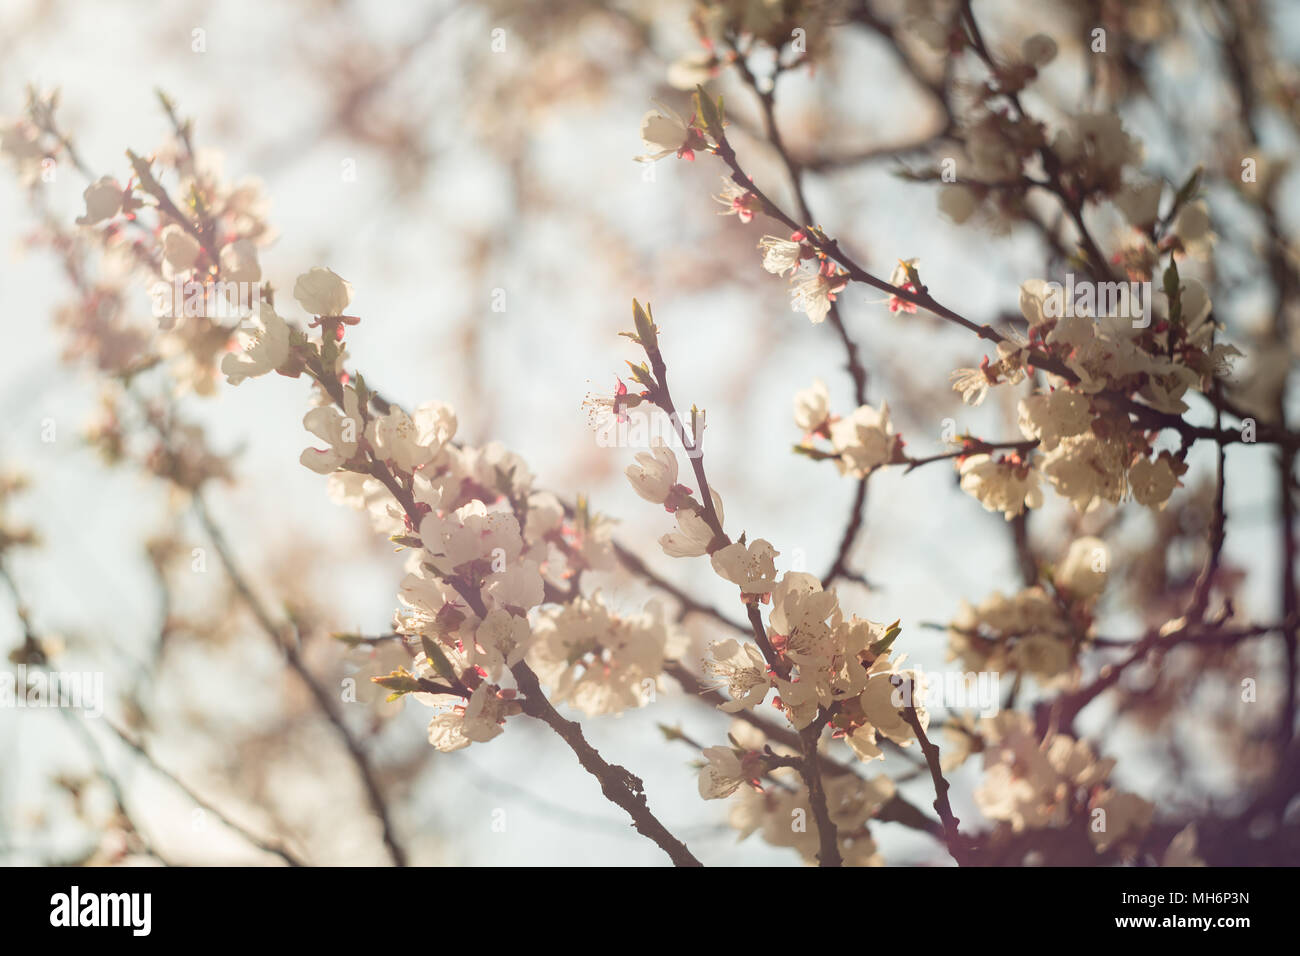 Spring flowering of apricot tree white flowers of apricot spring spring flowering of apricot tree white flowers of apricot spring flowering of fruit trees a tree with white flowers spring garden city park mightylinksfo